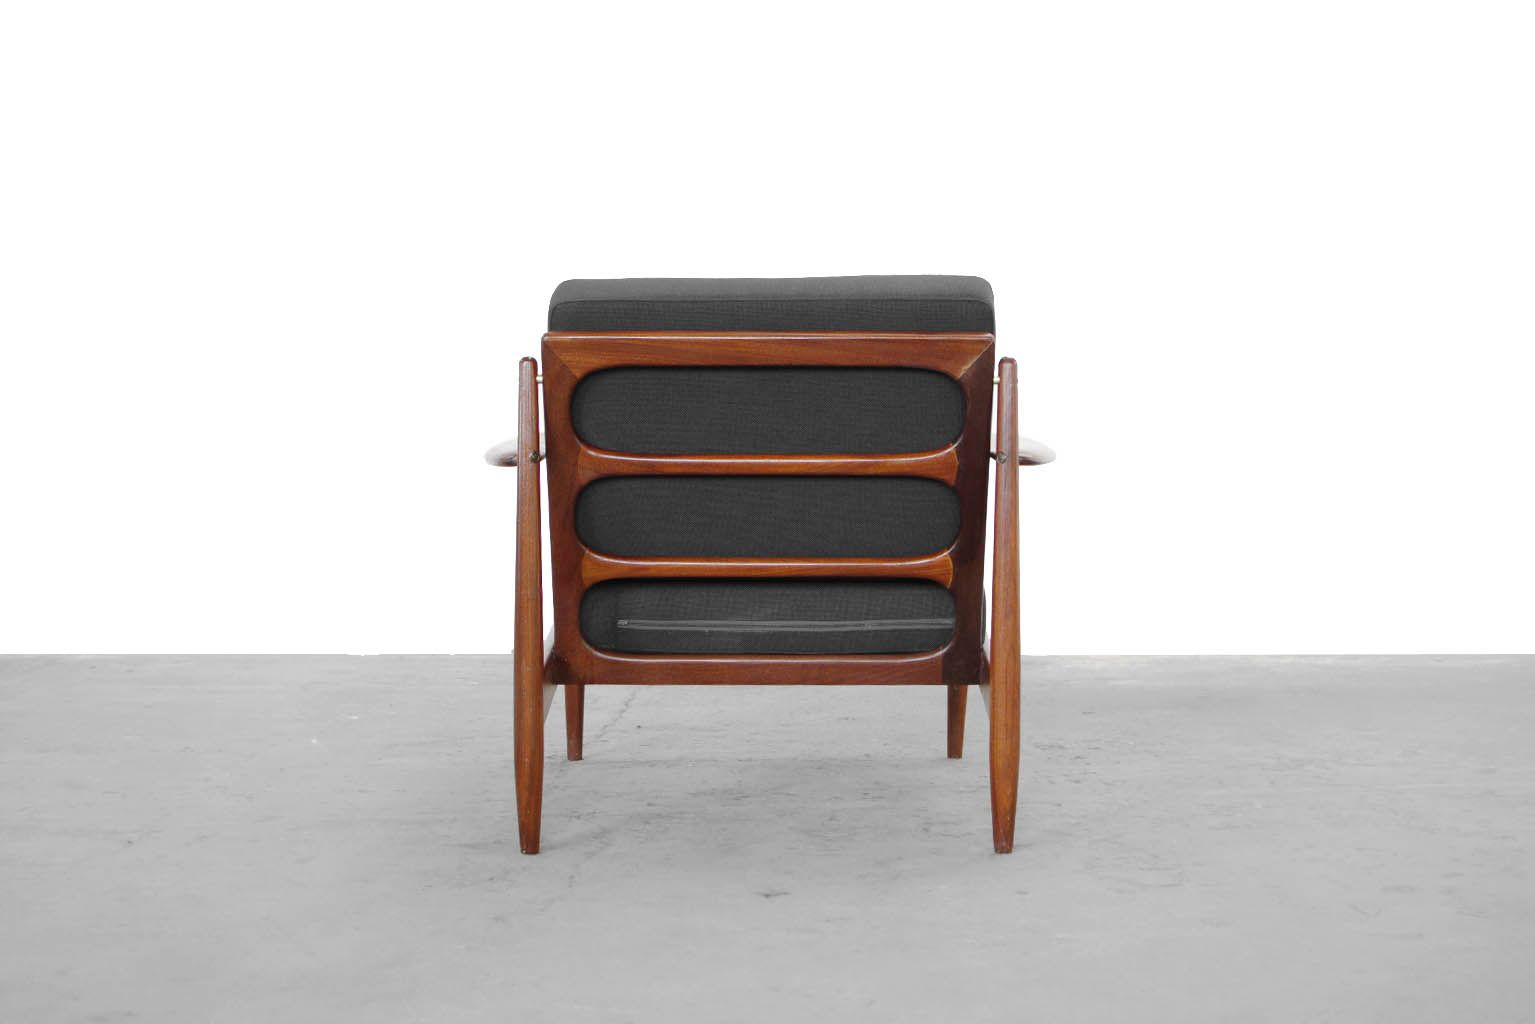 danish modern chairs 1960 set of 2 for sale at pamono